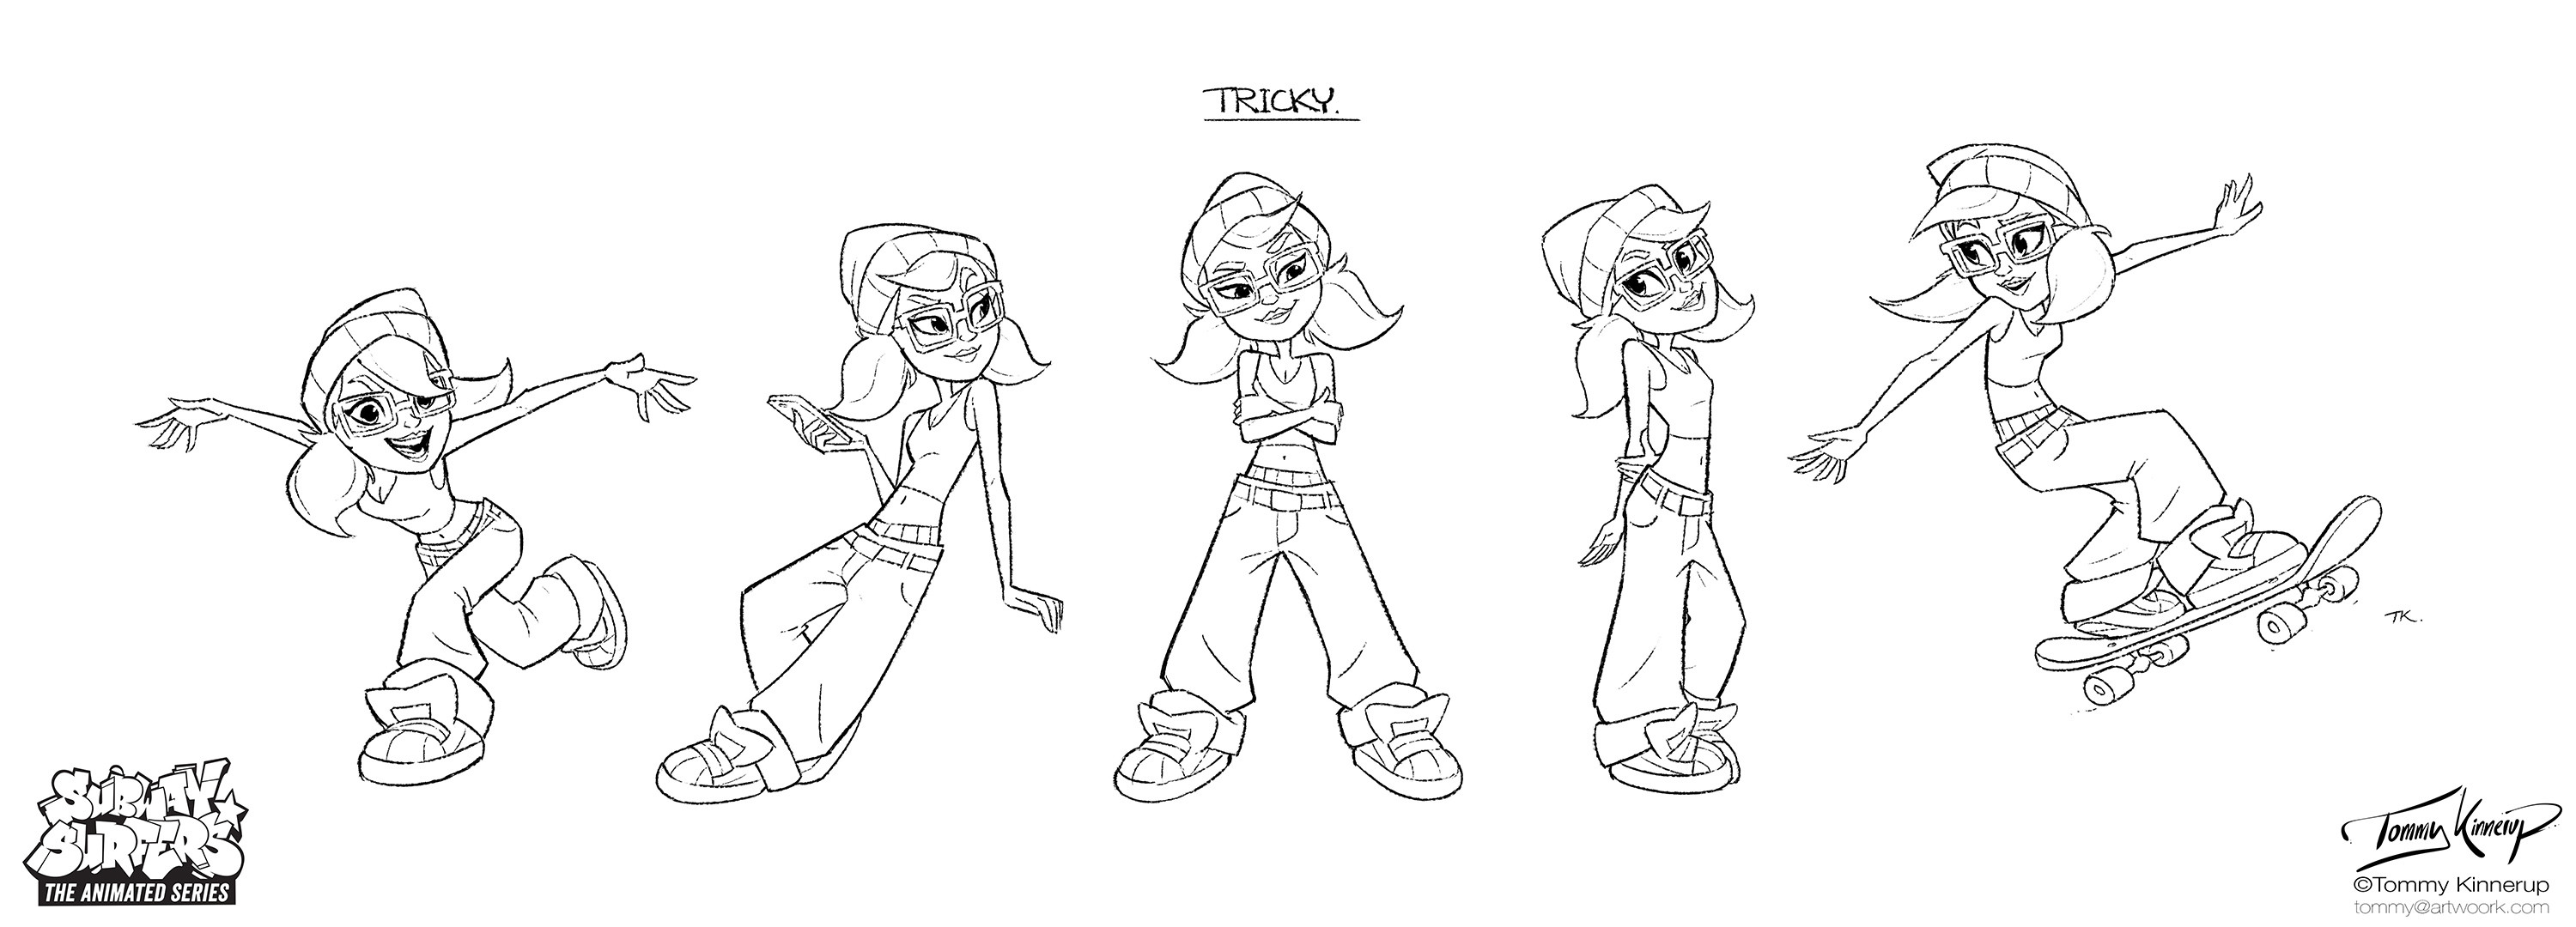 Tricky's poses